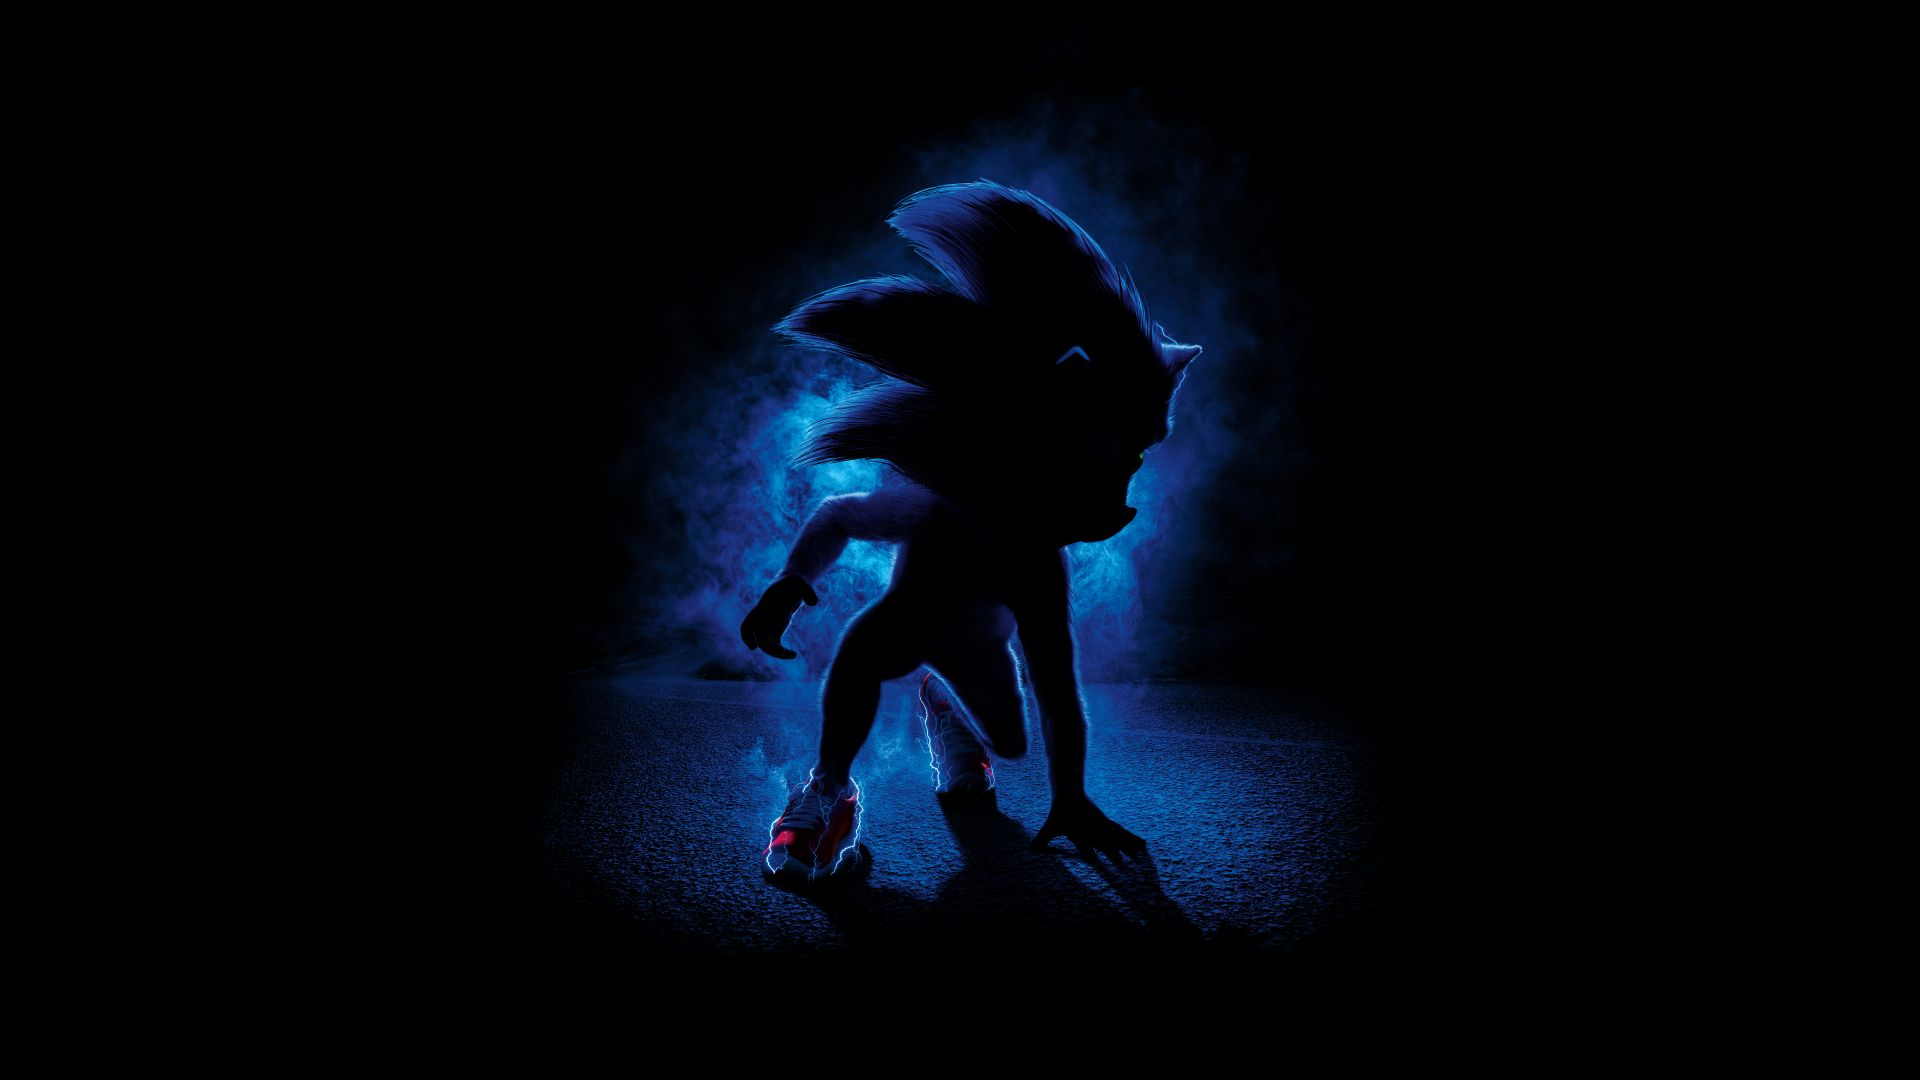 Sonic the Hedgehog, poster, 8K (horizontal)